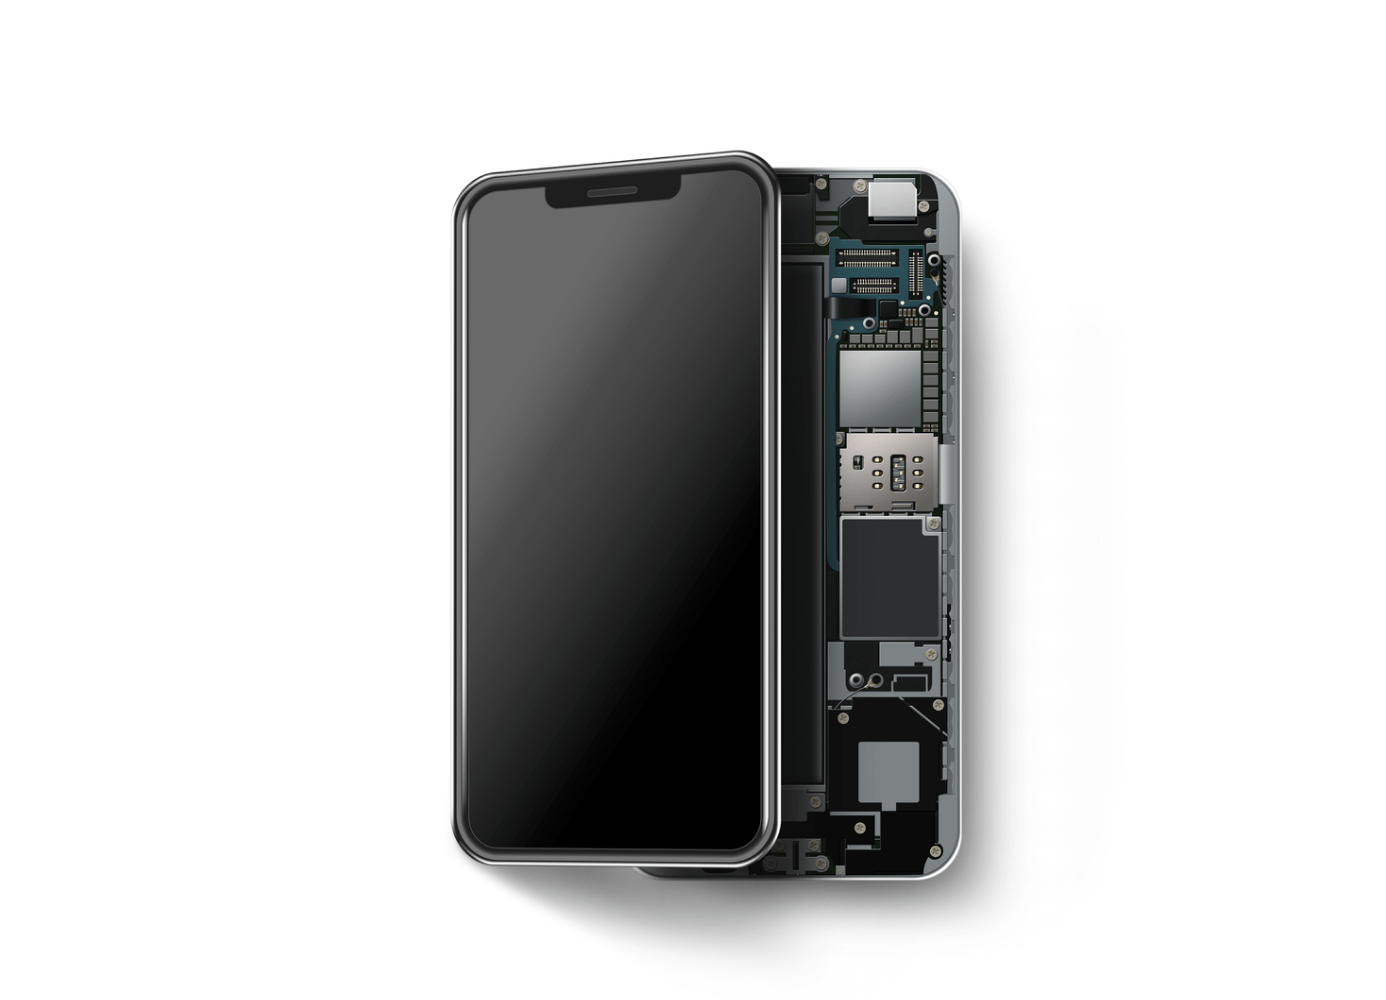 inside look at a smartphone